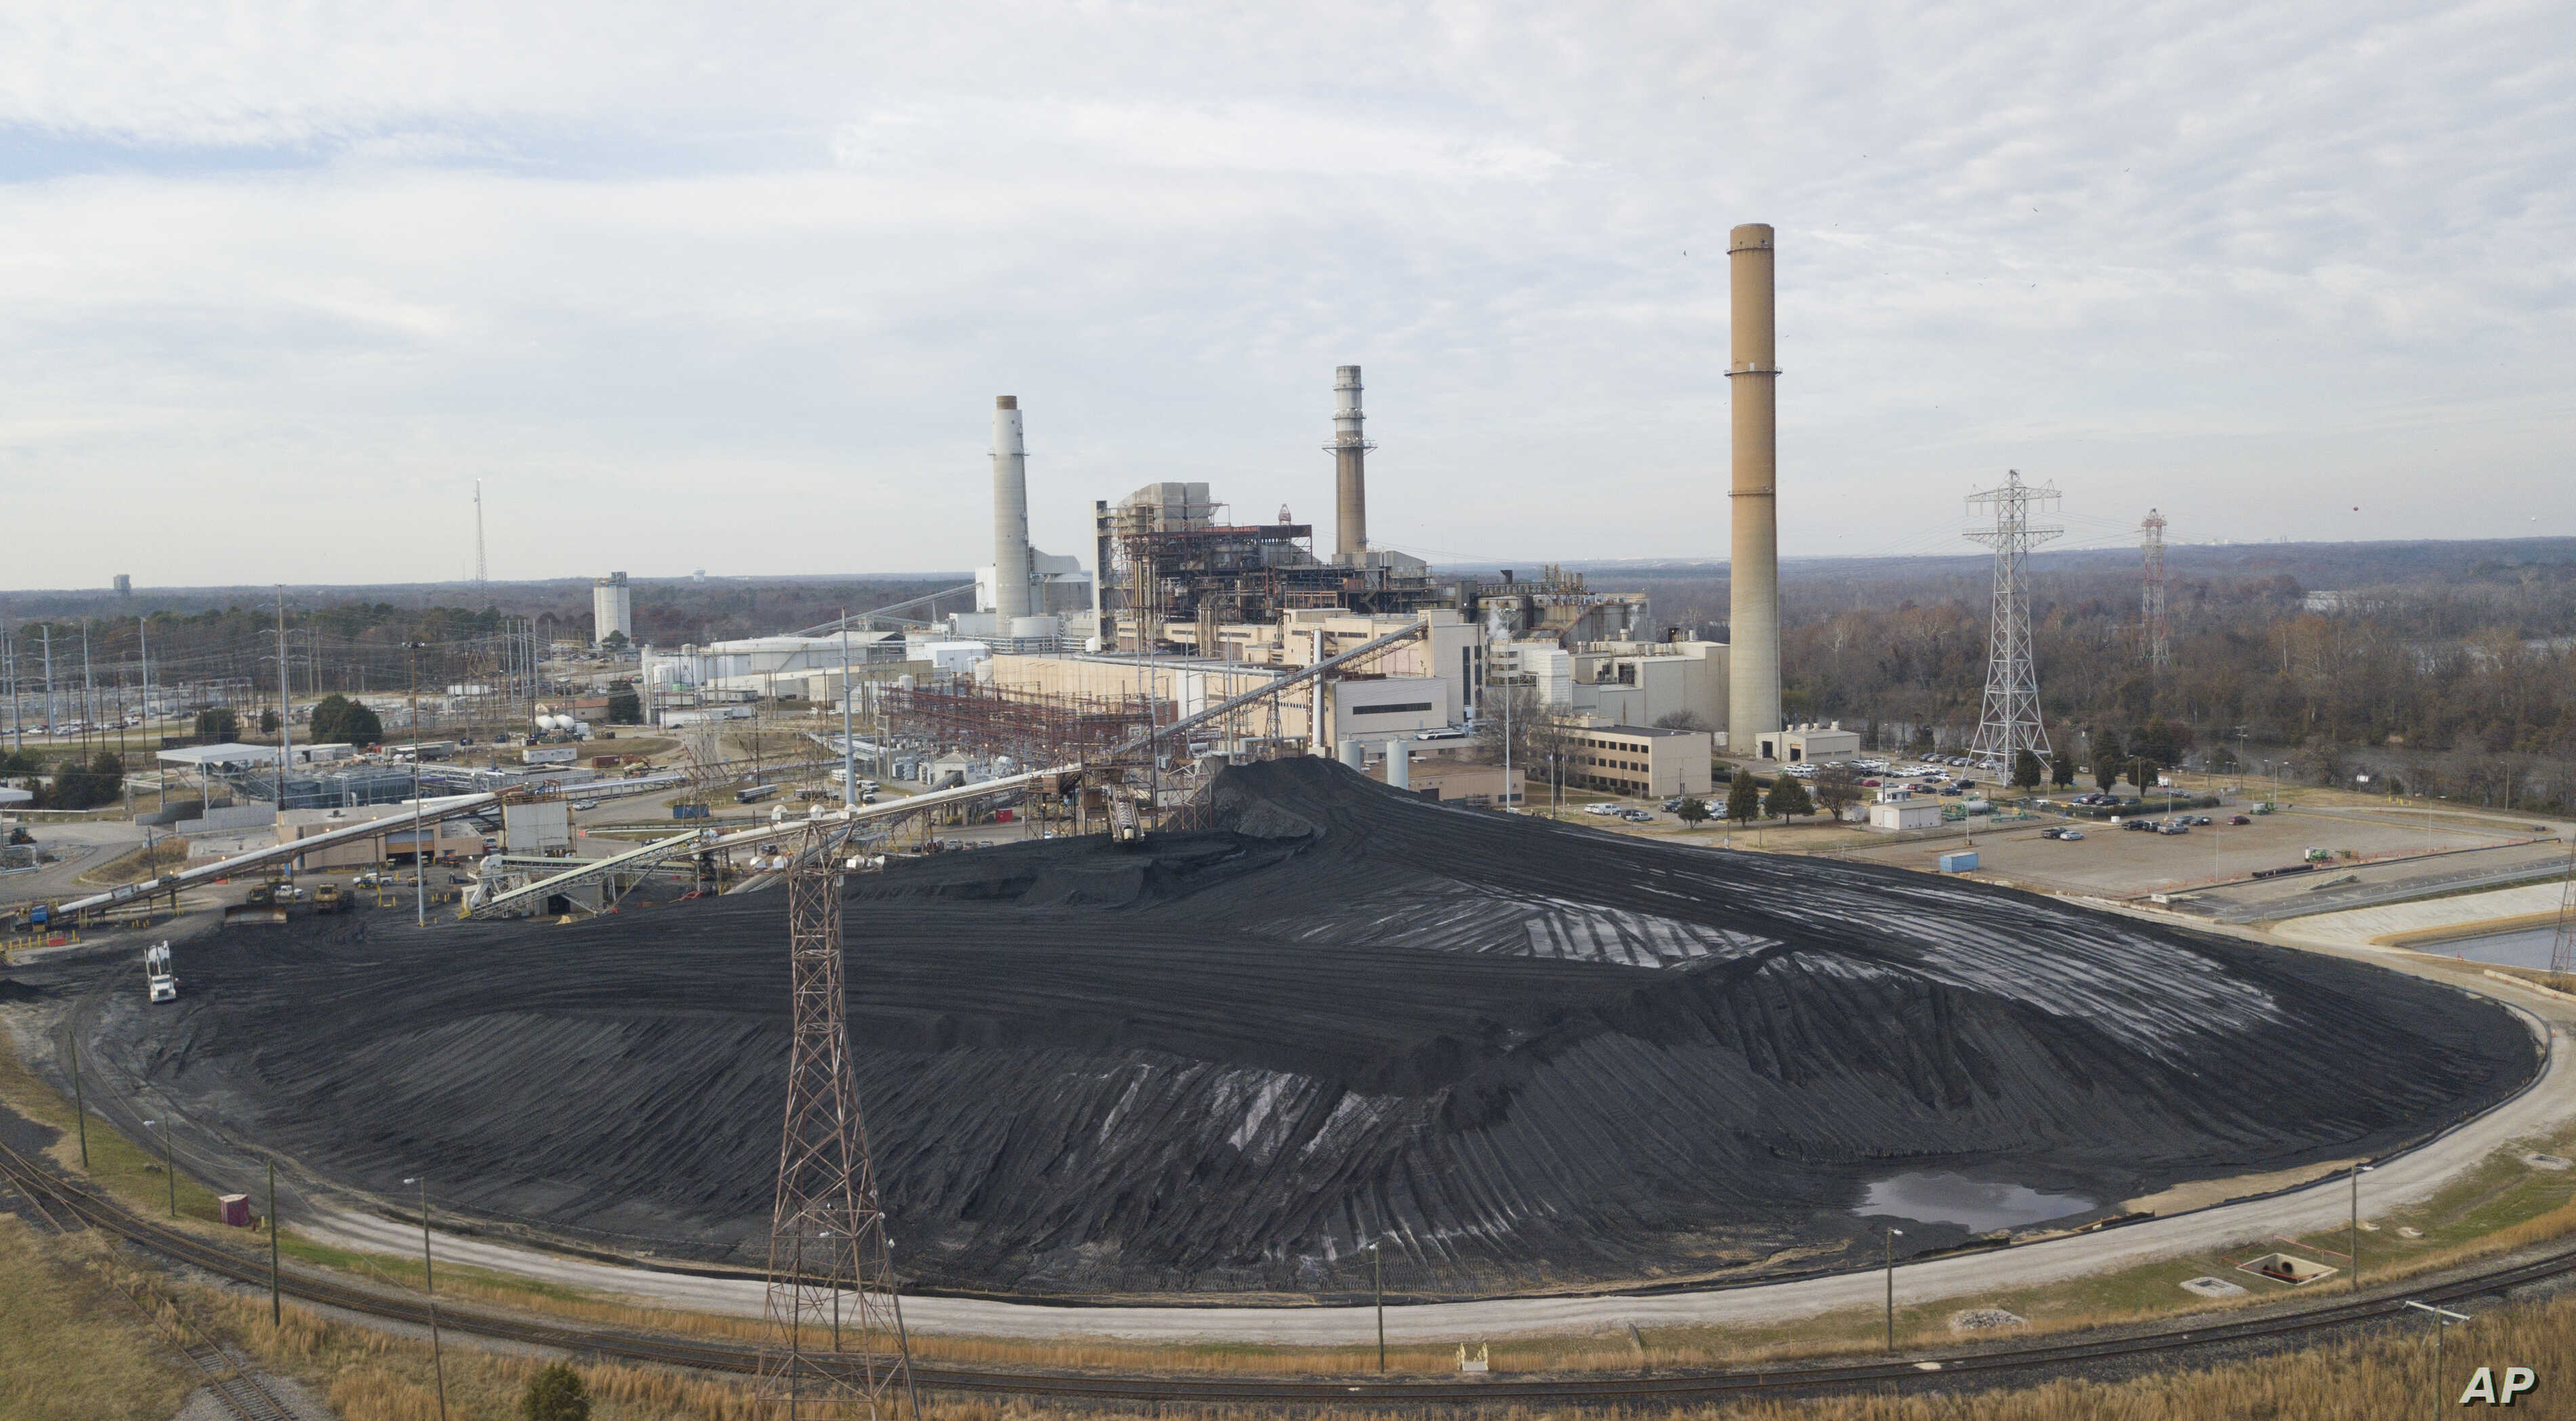 A large field of coal is stored on the property of Dominon Energy's Chesterfield Power station in Chester, Virginia,  Dec. 4, 2017.